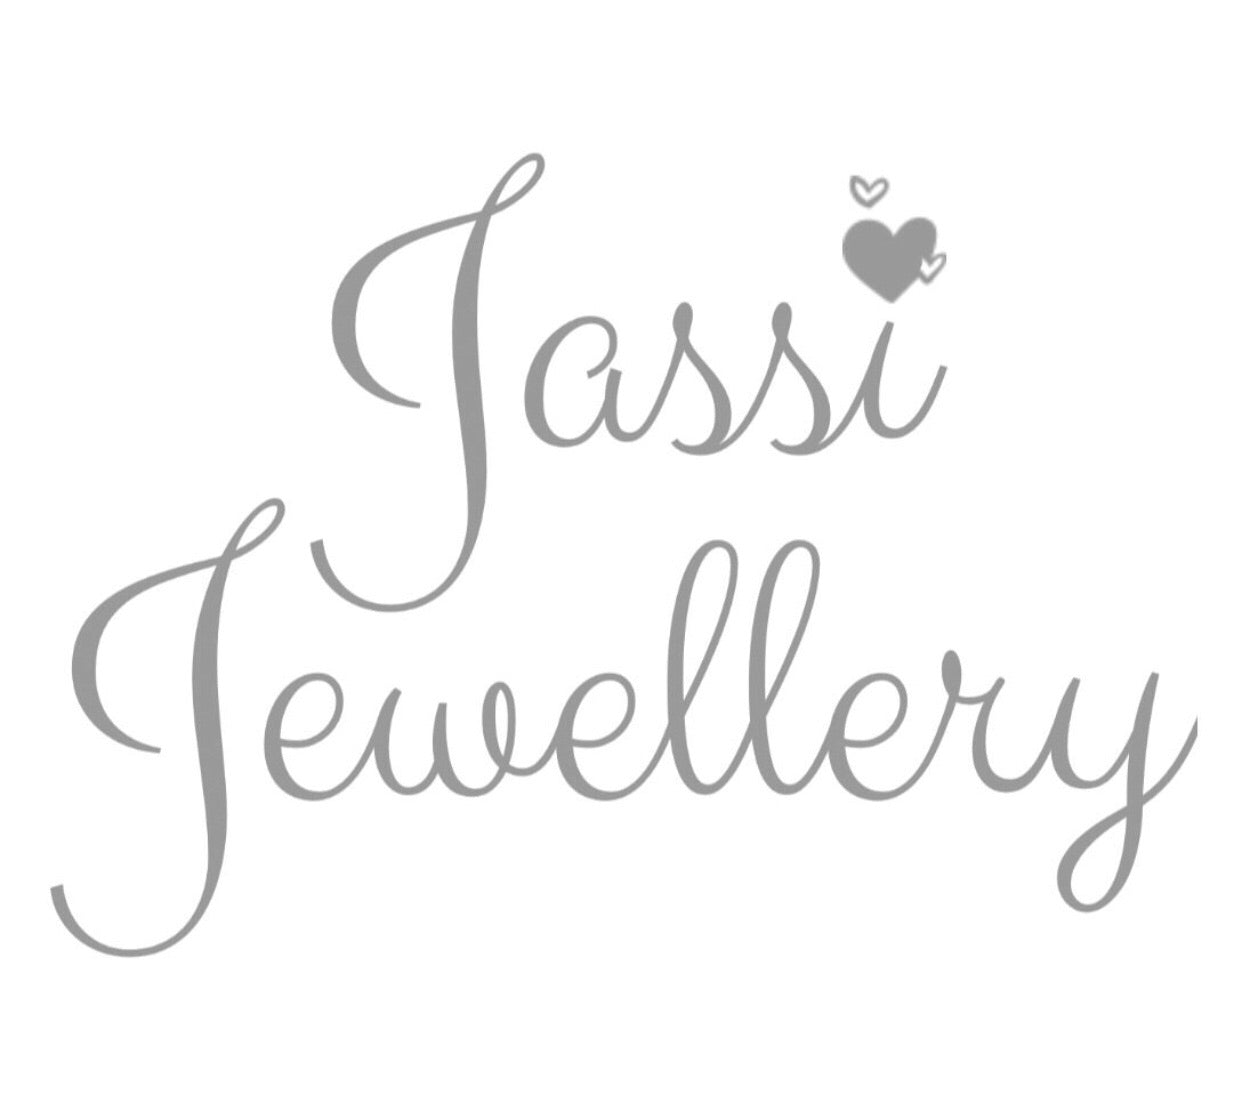 Jassi Jewellery Studded Earrings